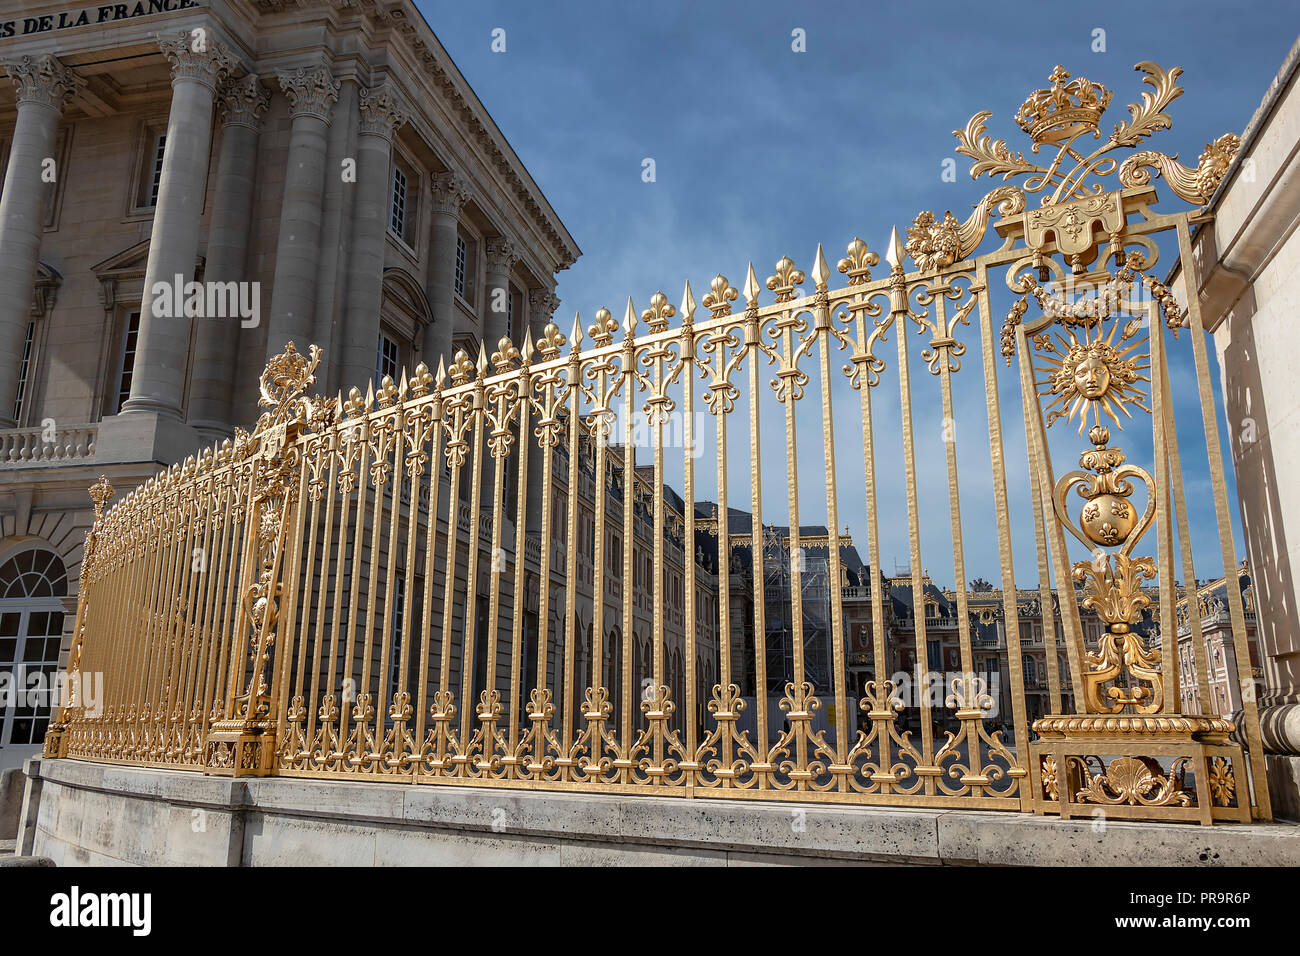 Golden fence in exterior facade of Versailles Palace, Paris, France - Stock Image